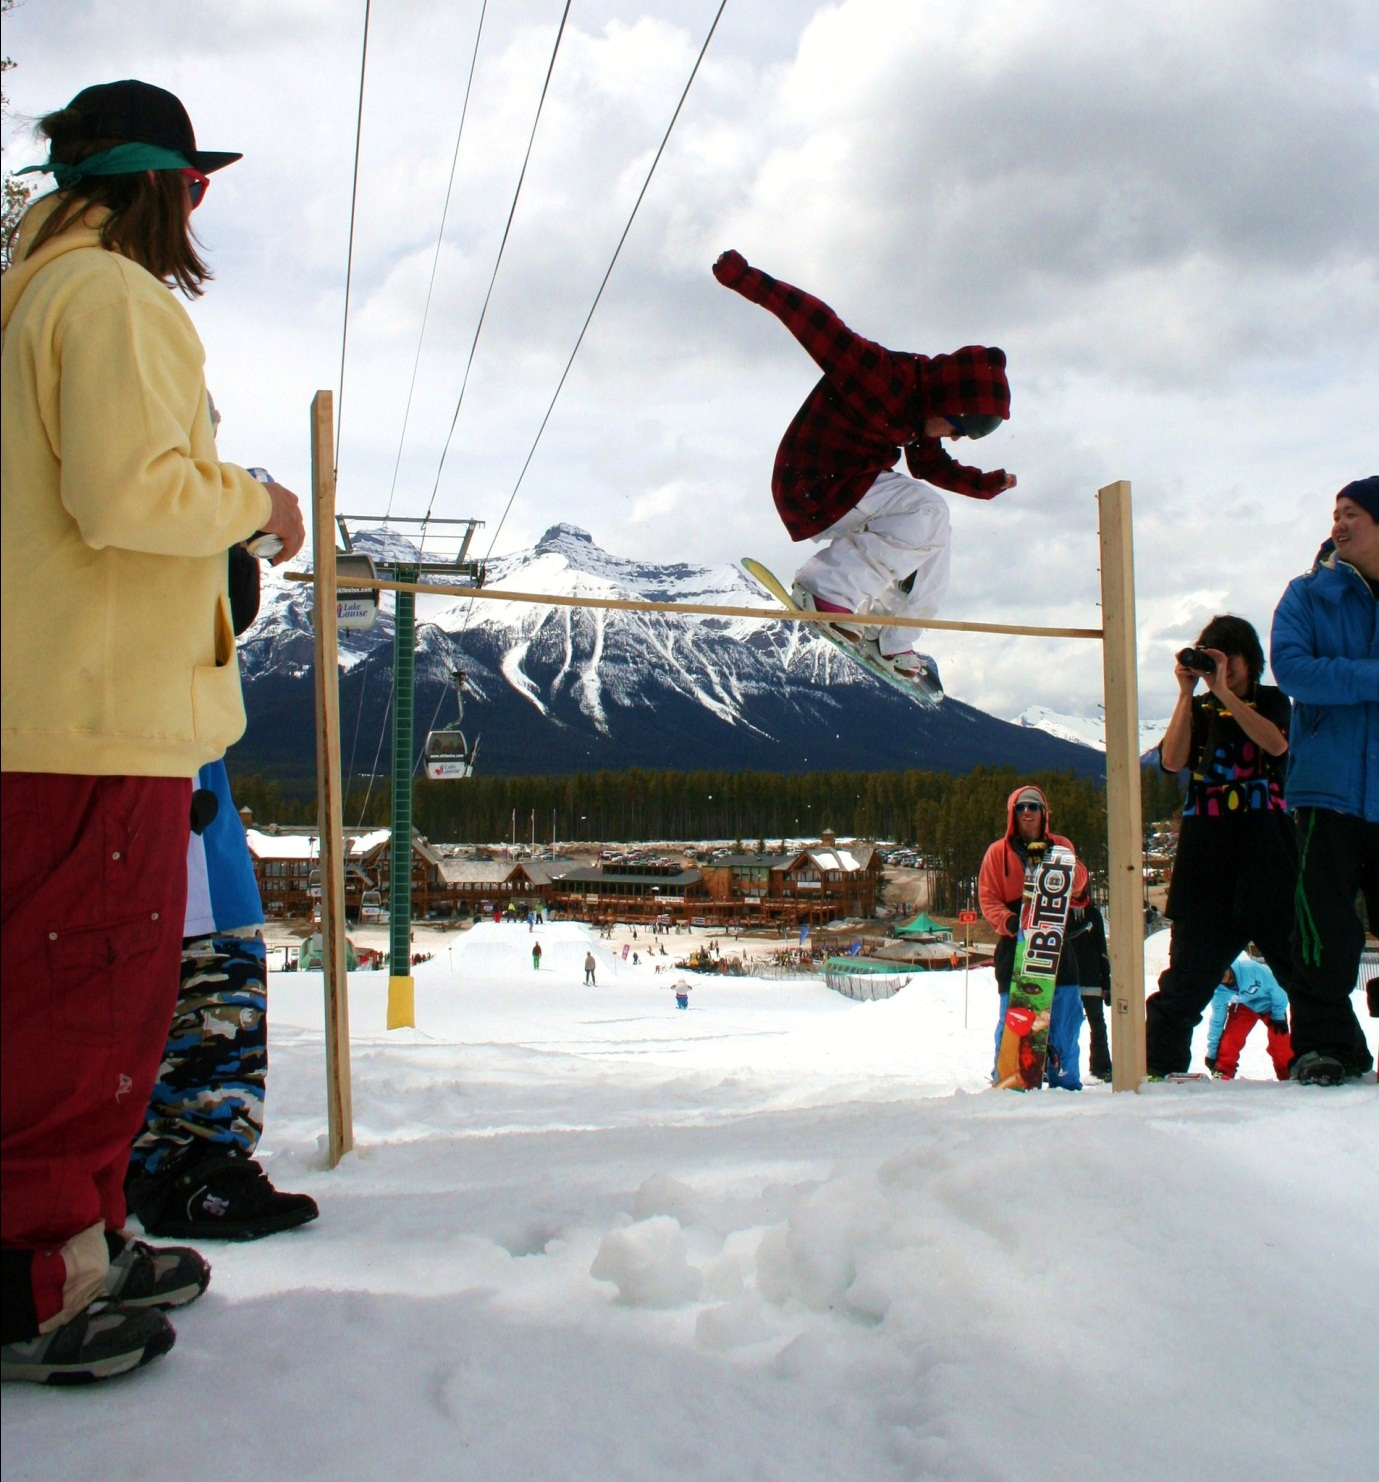 The Ollie You Must Learn This One It's Part Of Being A Legitimate  Snowboarder